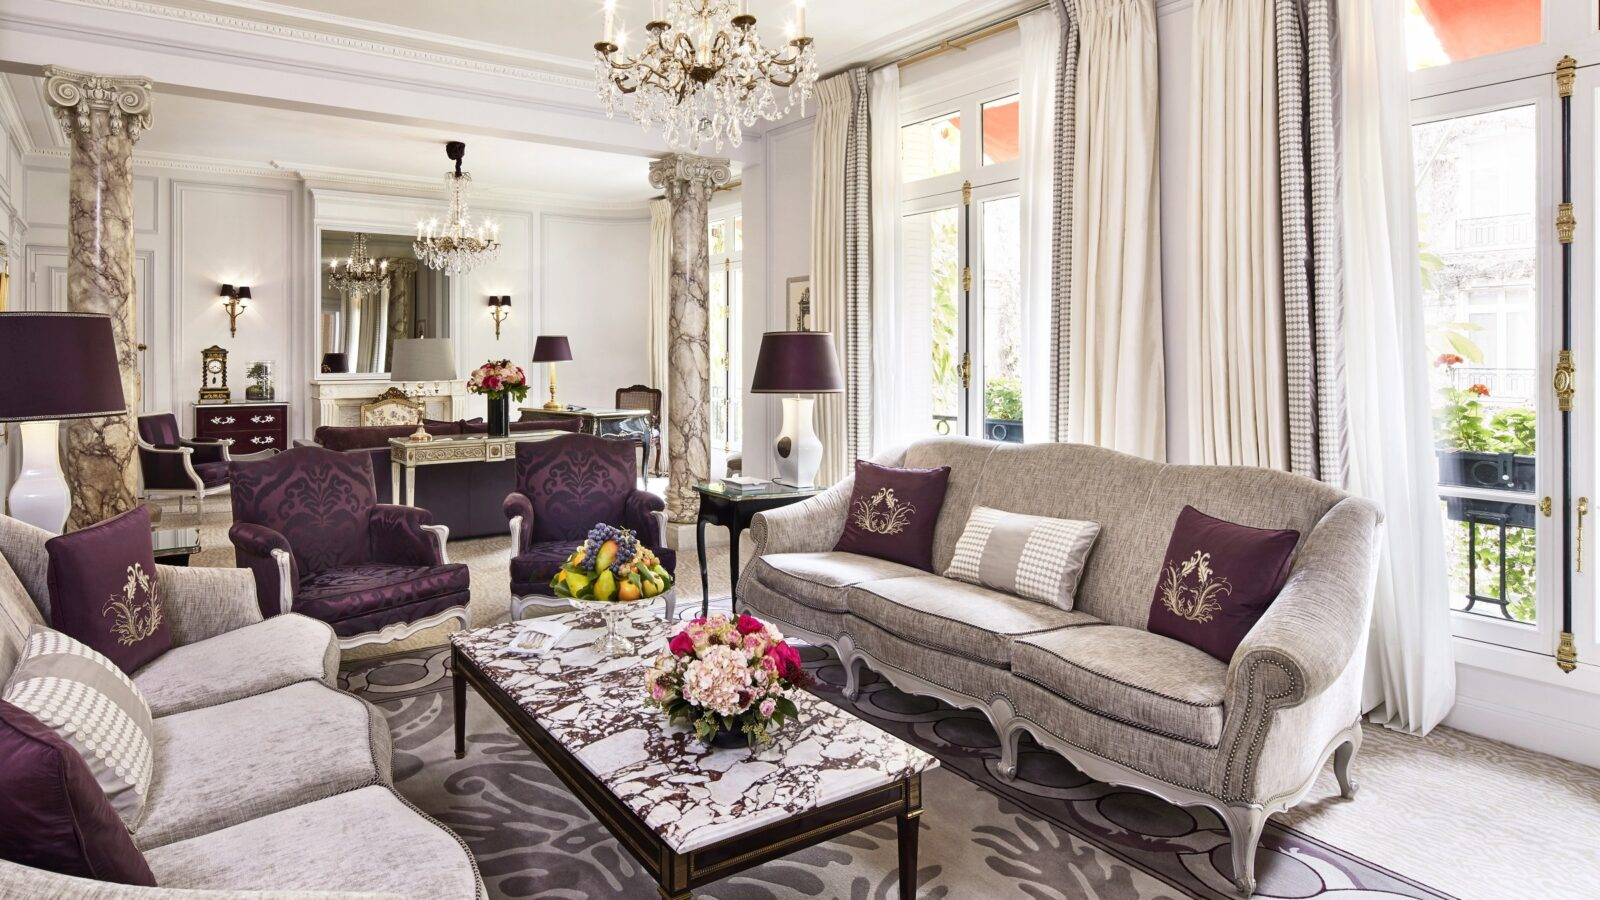 Presidential Suite at Hôtel Plaza Athénée, Paris